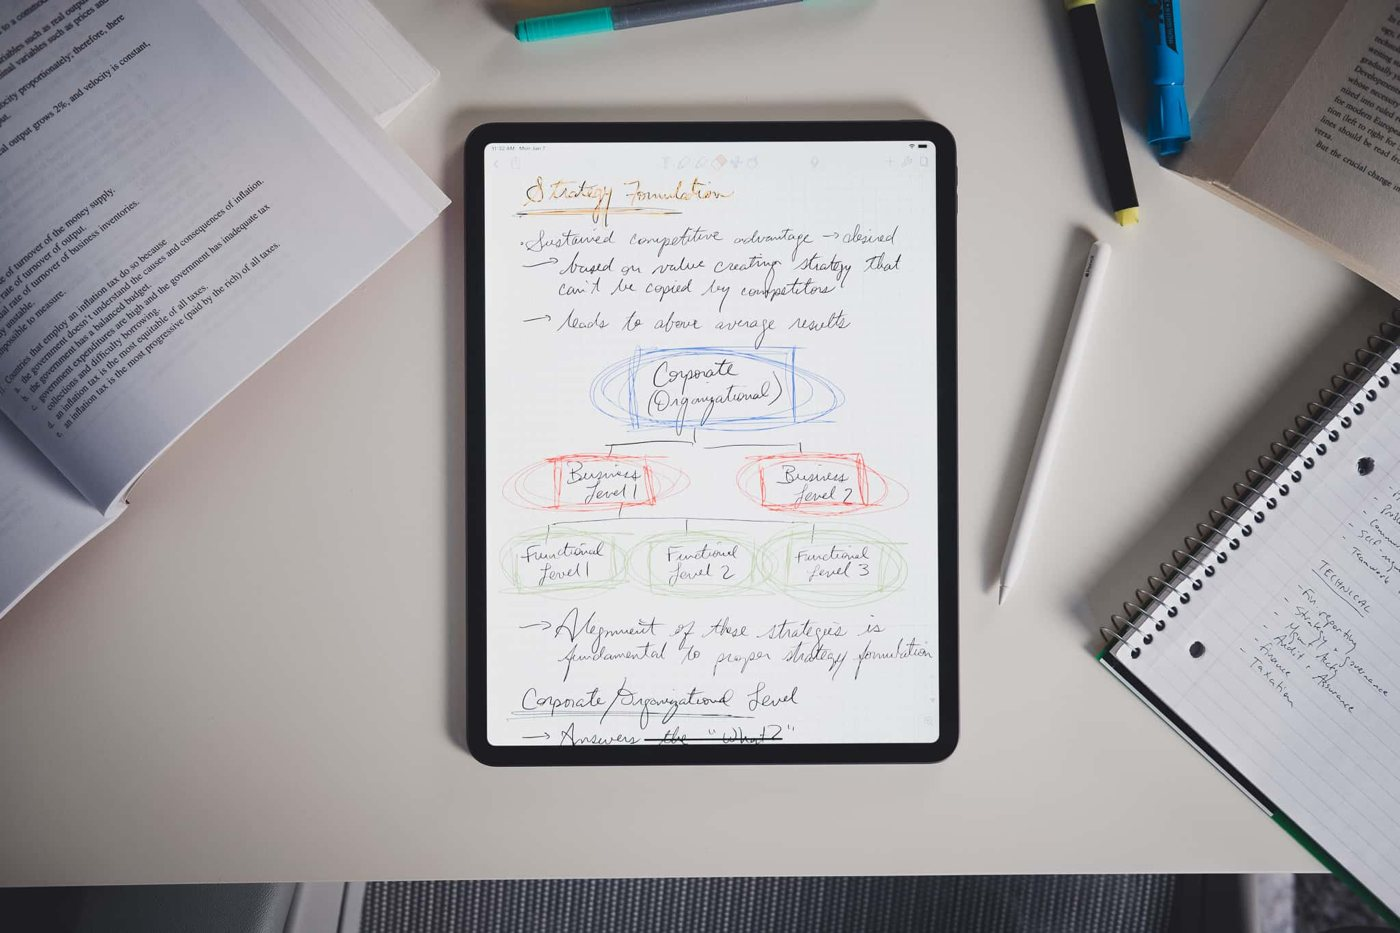 writing notes on ipad pro